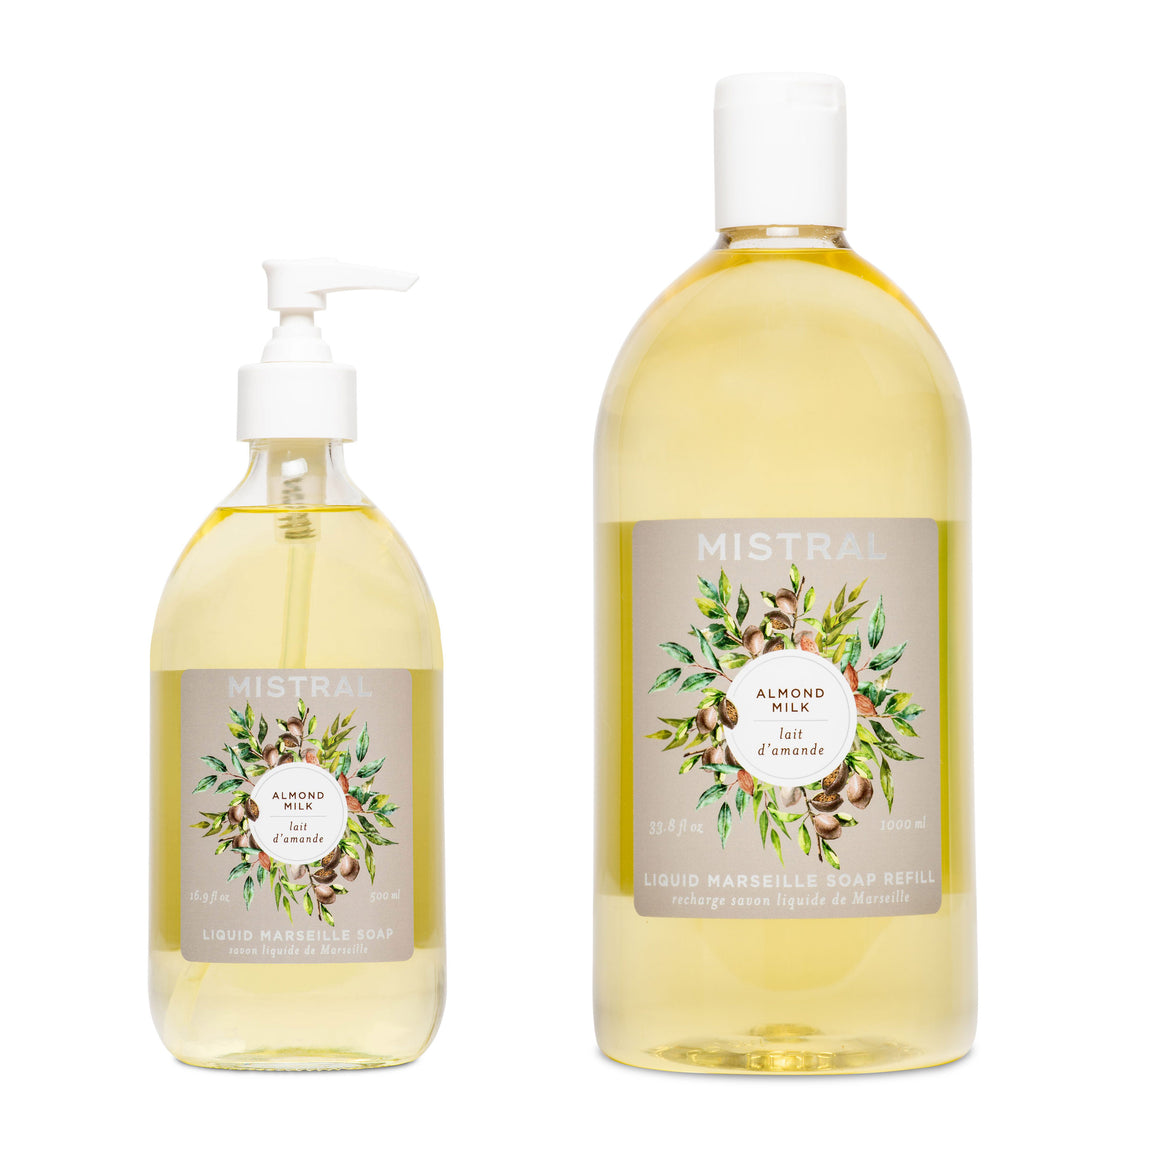 Almond Milk Liquid Marseille Soap Bundle